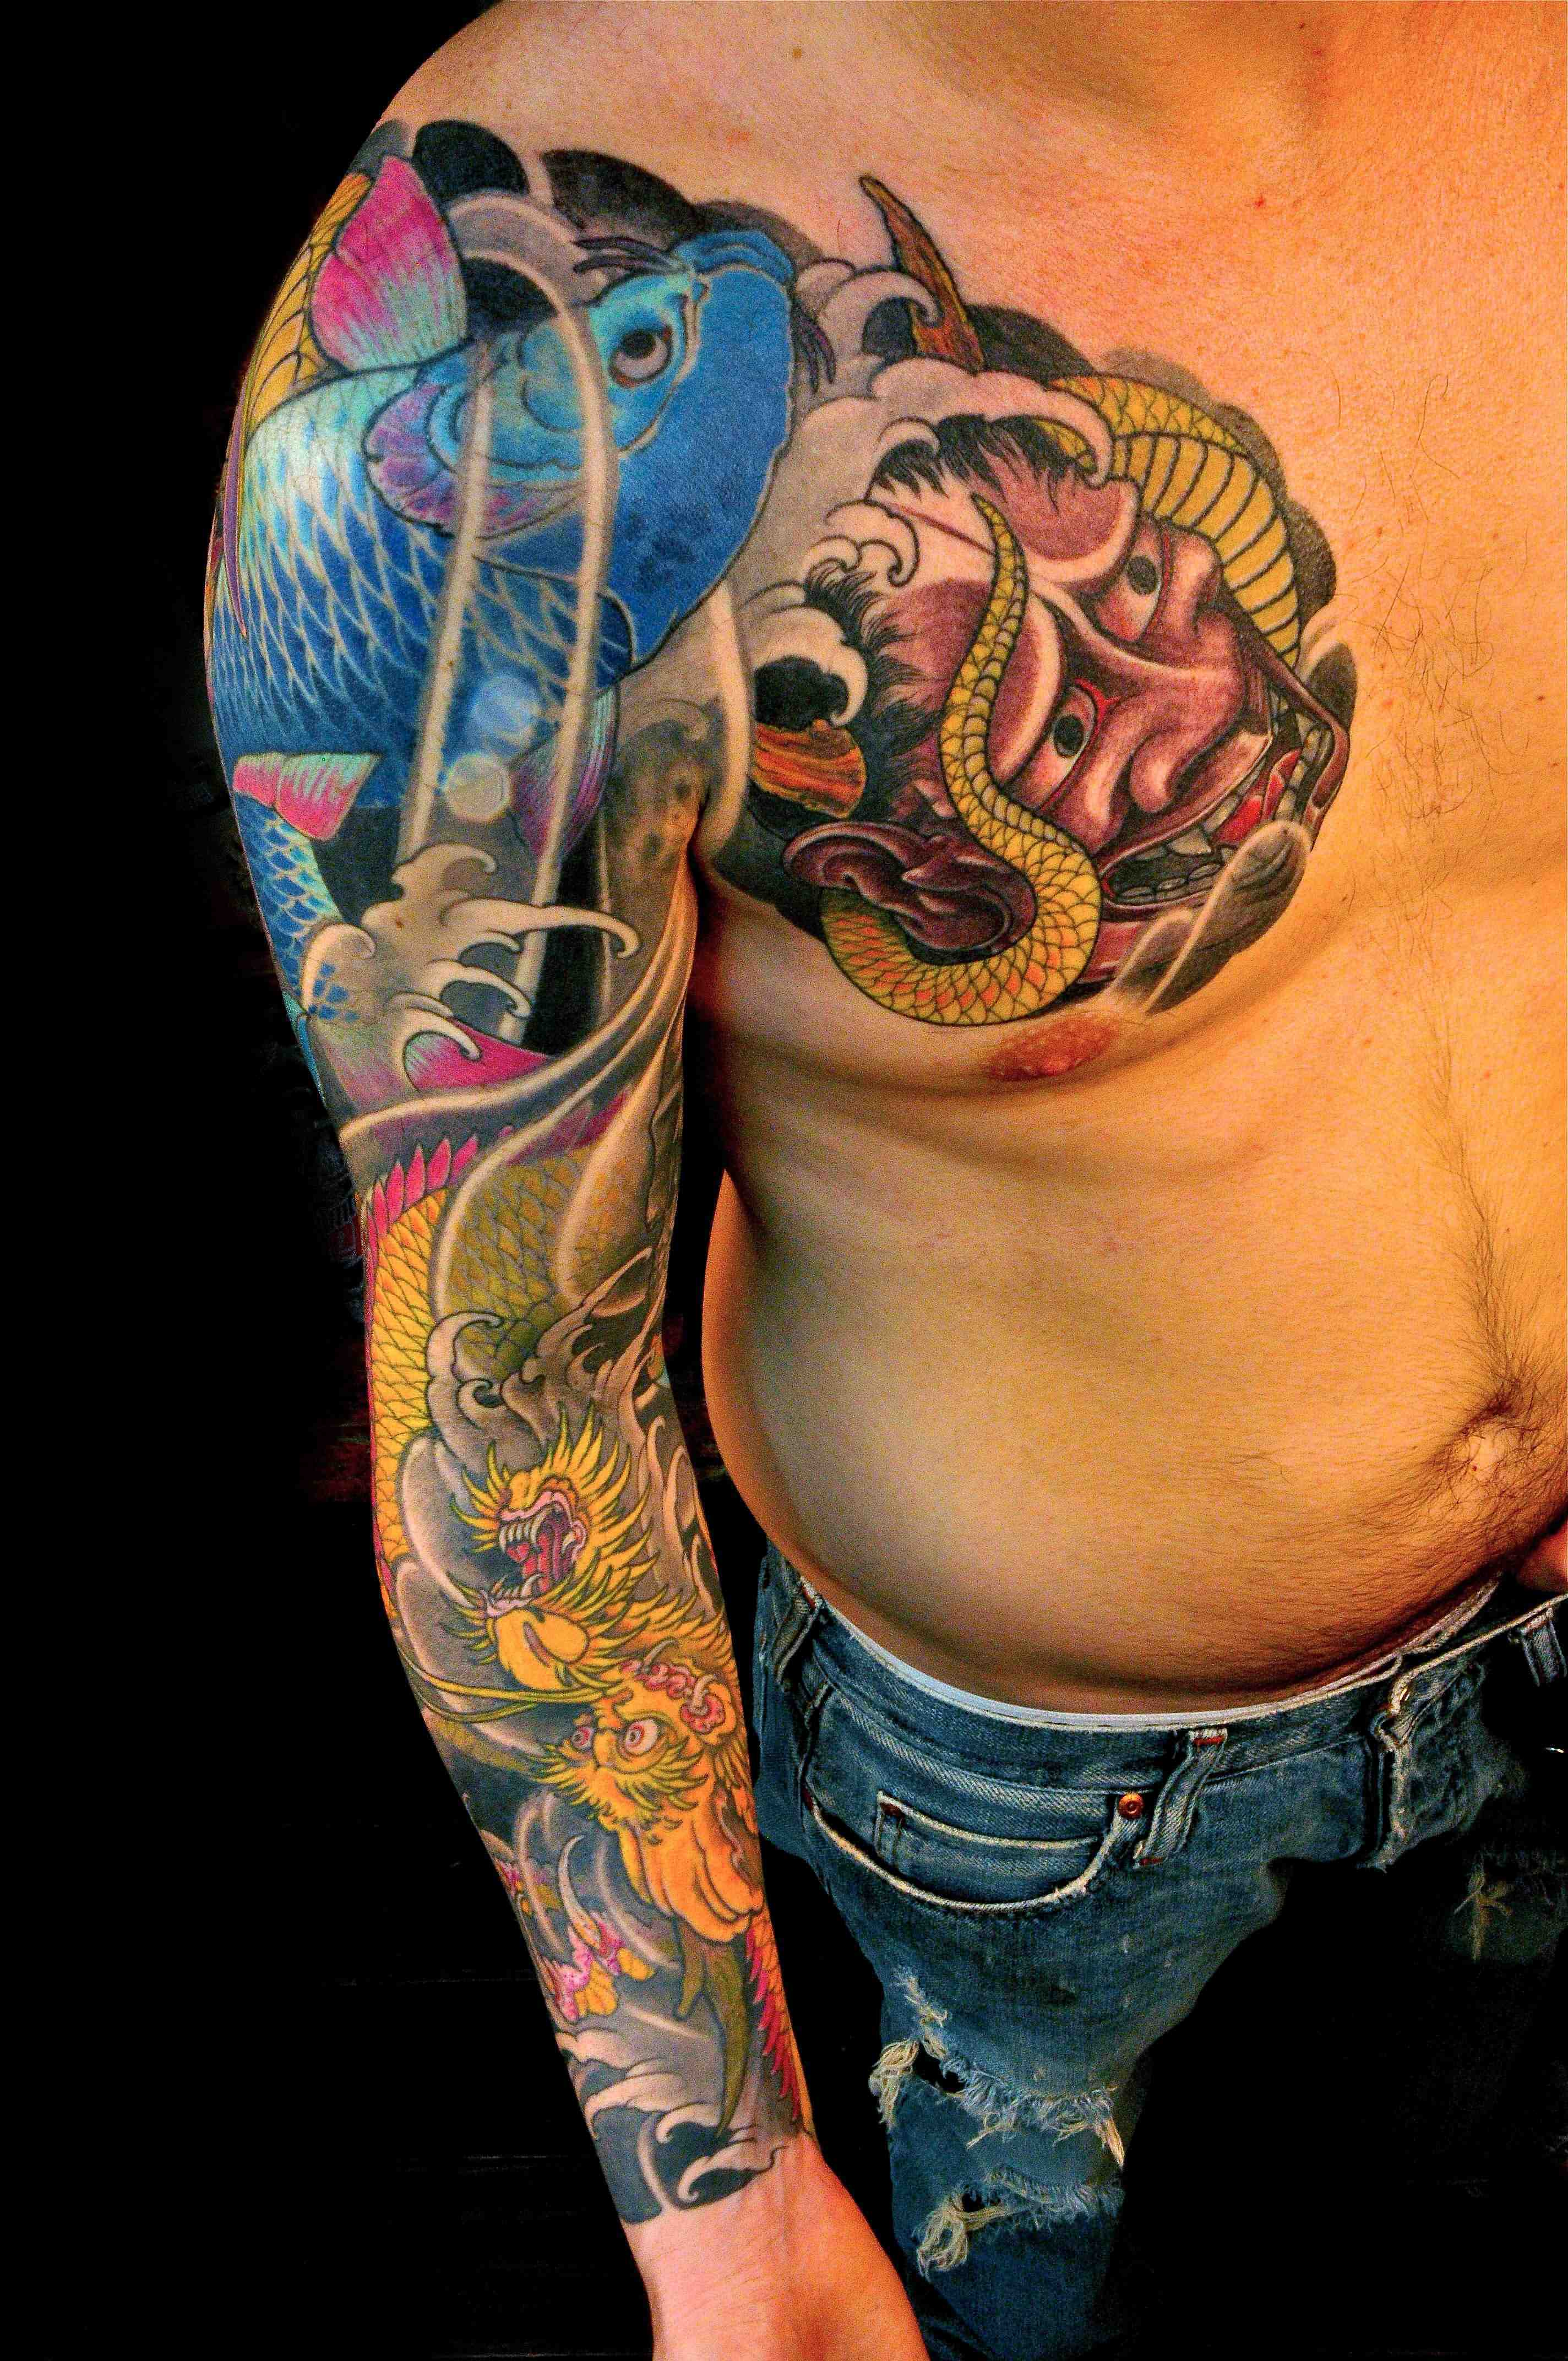 Nunez Tattoos : nunez, tattoos, Chris, Nunez, Tattoo, Chest, Right, Sleeve